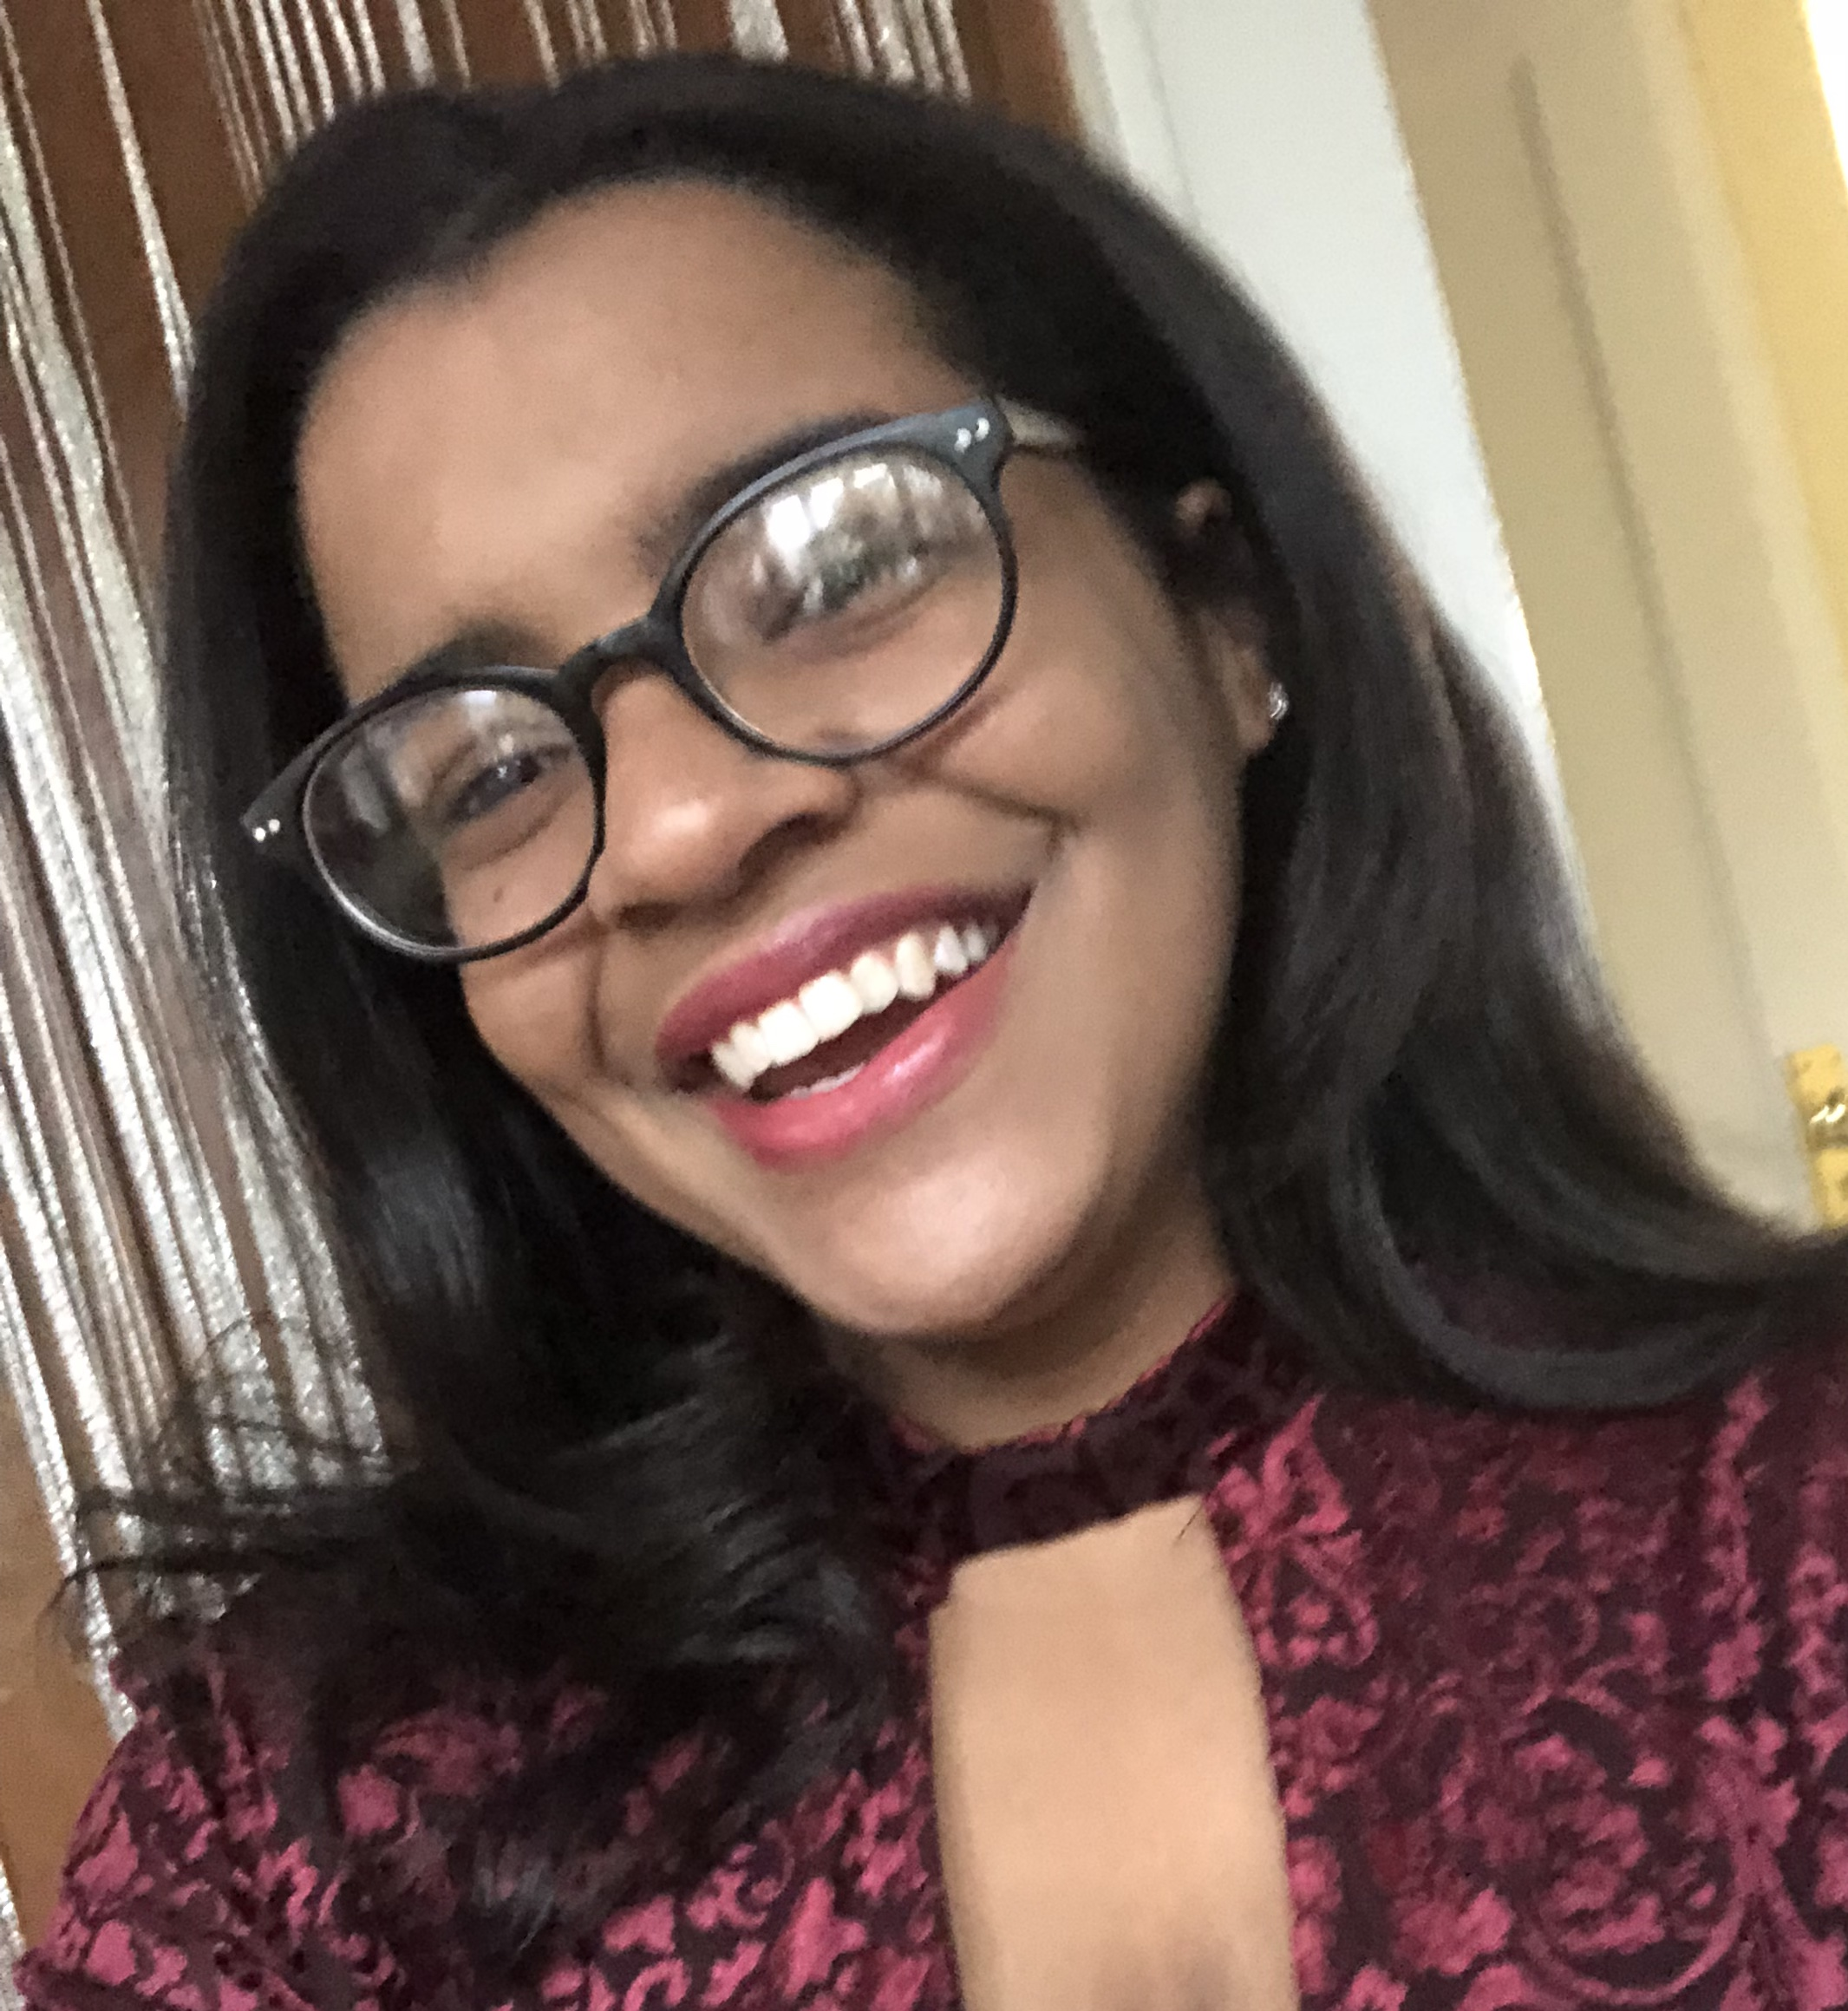 Scarlett Liriano Cepin - WRITERHiya! I'm Scarlett! I'm currently pursuing studies in Marketing and Journalism at Baruch College in New York City. I enjoy writing about anything from my love of pop culture to the plight of women of color.See my work on Blended: Music, Culture